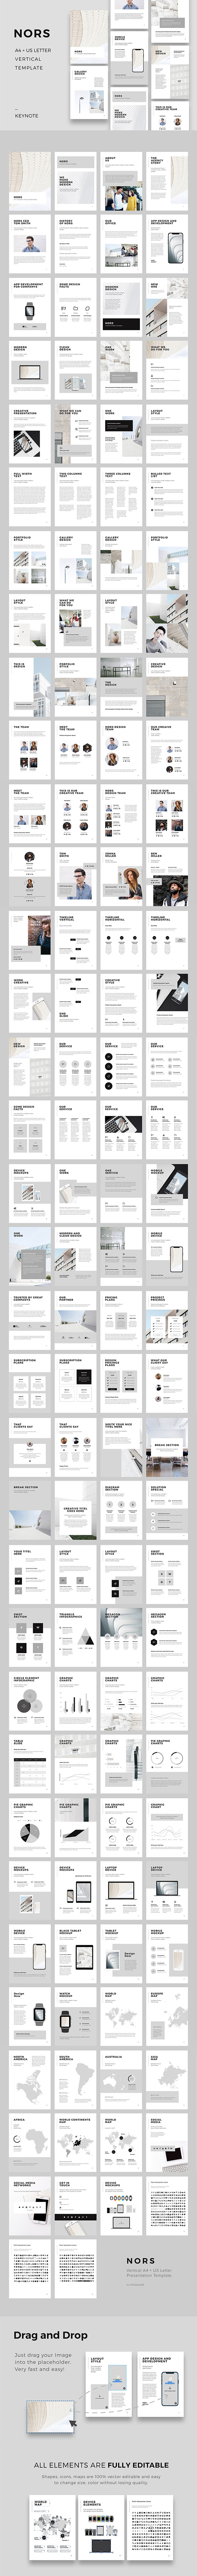 GraphicRiver NORS A4 US Letter Vertical Keynote Template 20648223